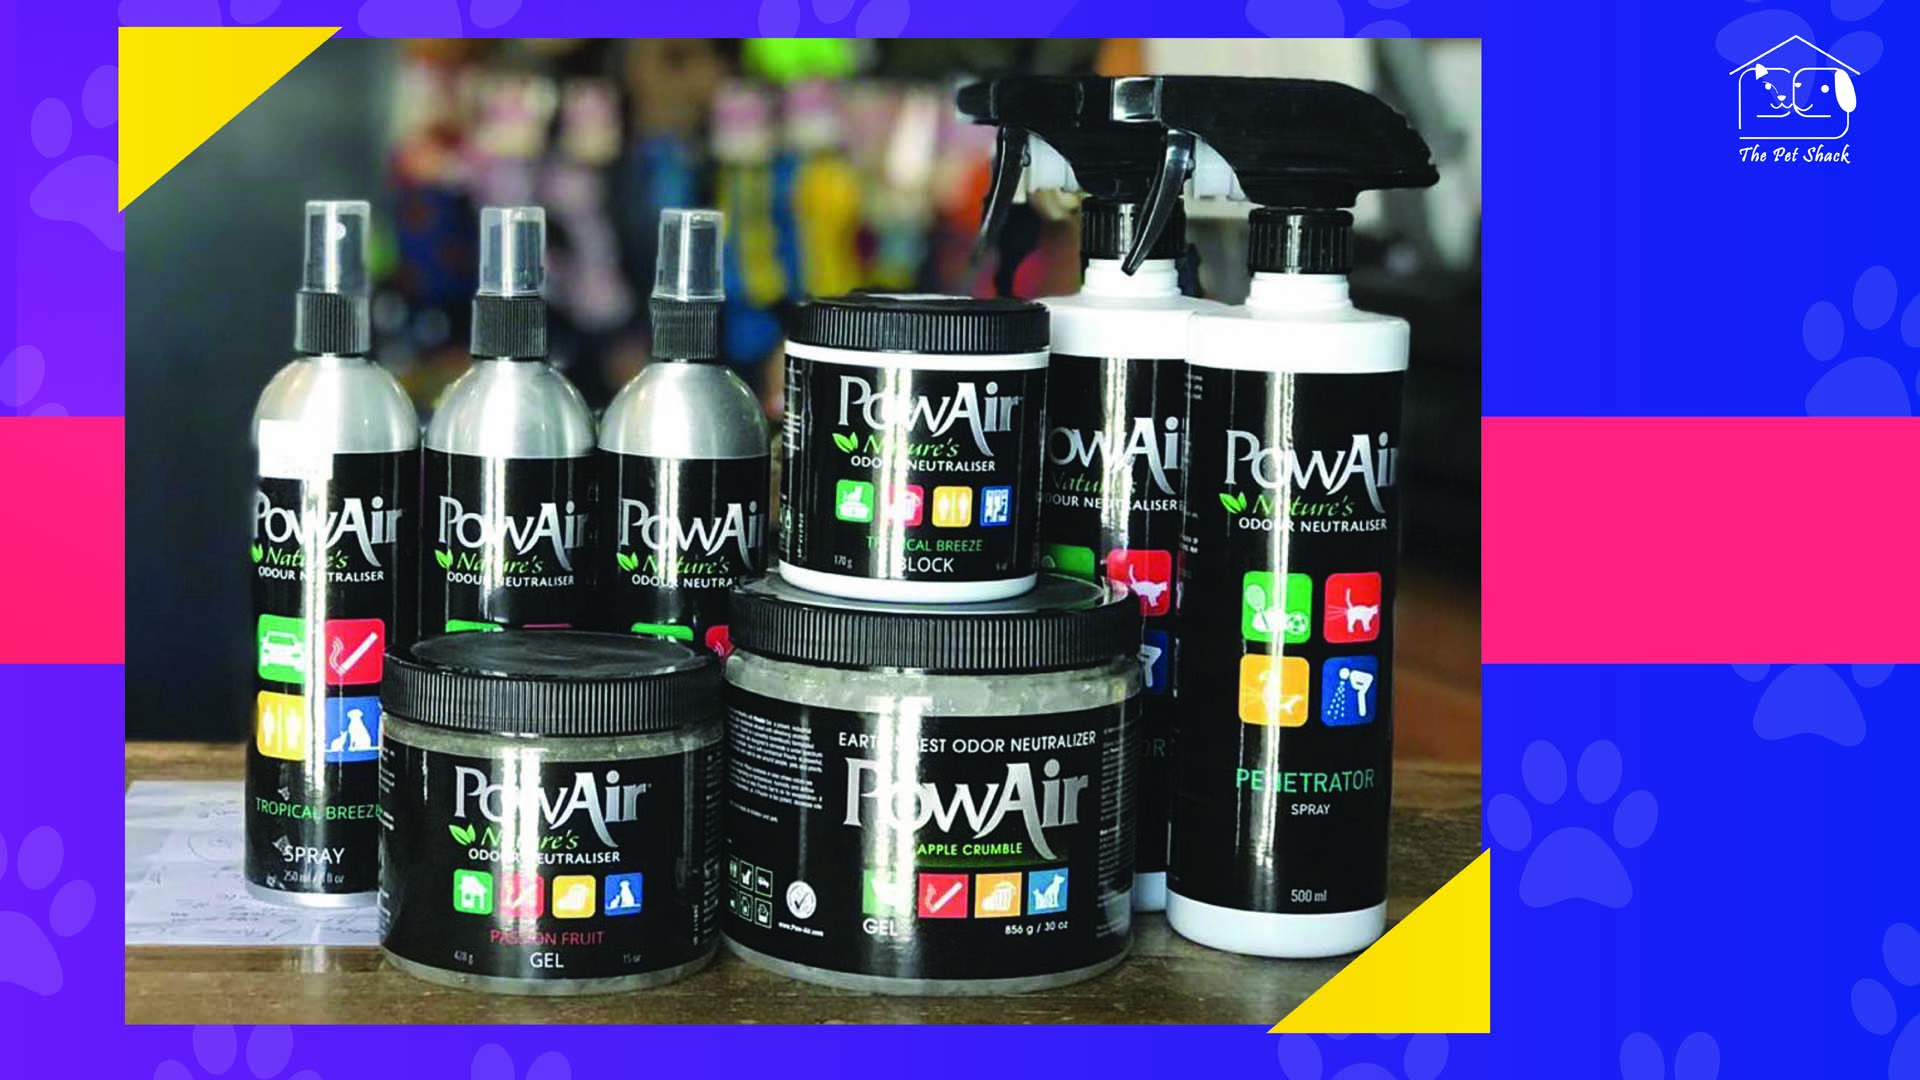 PowAir Animal Products